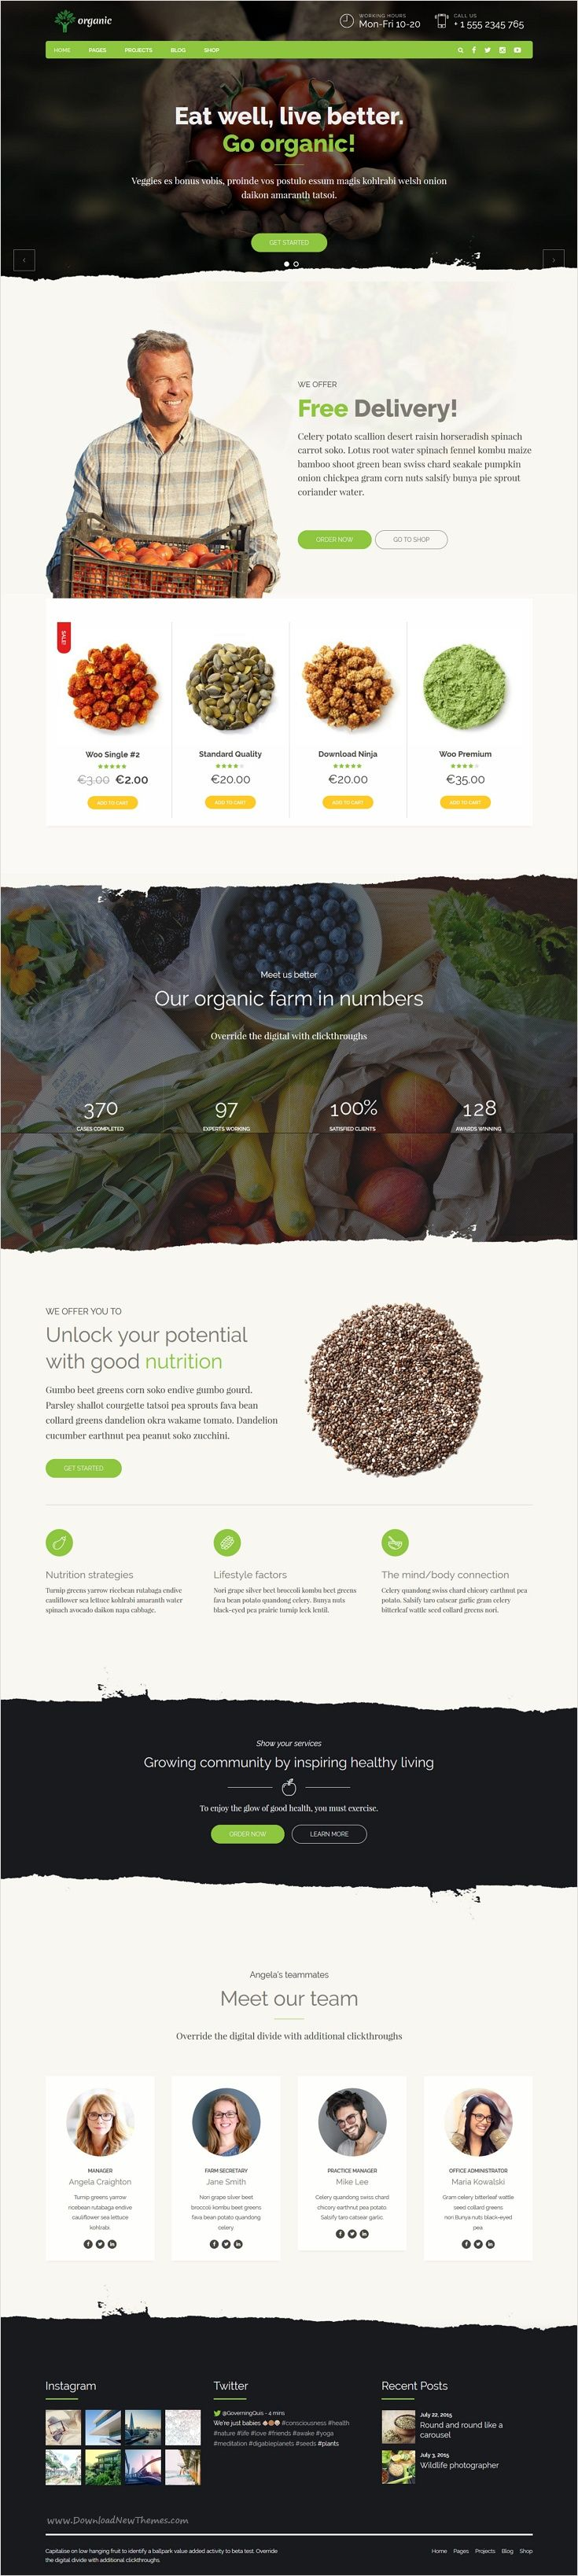 Organic Food is a awesome 9 in 1 #WordPress theme exclusively built for #agriculture #farms, nutritionist, health coach, cooking school, delivery and farm websites download now➩ https://themeforest.net/item/organic-food-nutritionist-food-wordpress-theme/18029019?ref=Datasata